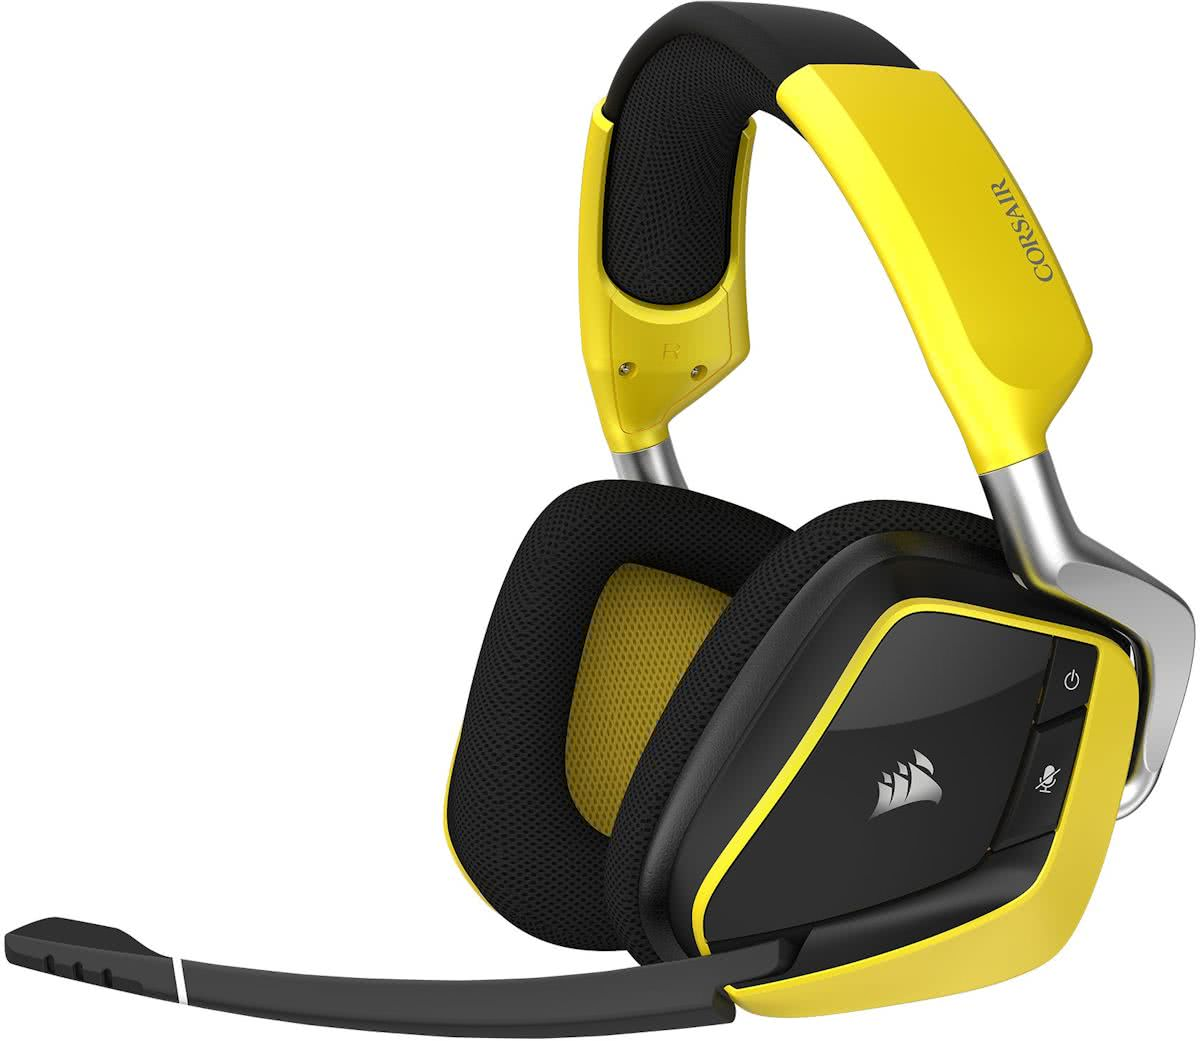 Void Pro RGB Wireless - Gaming Headset - Special Edition - Dolby Headphone 7.1 - Yellow/Black - PC